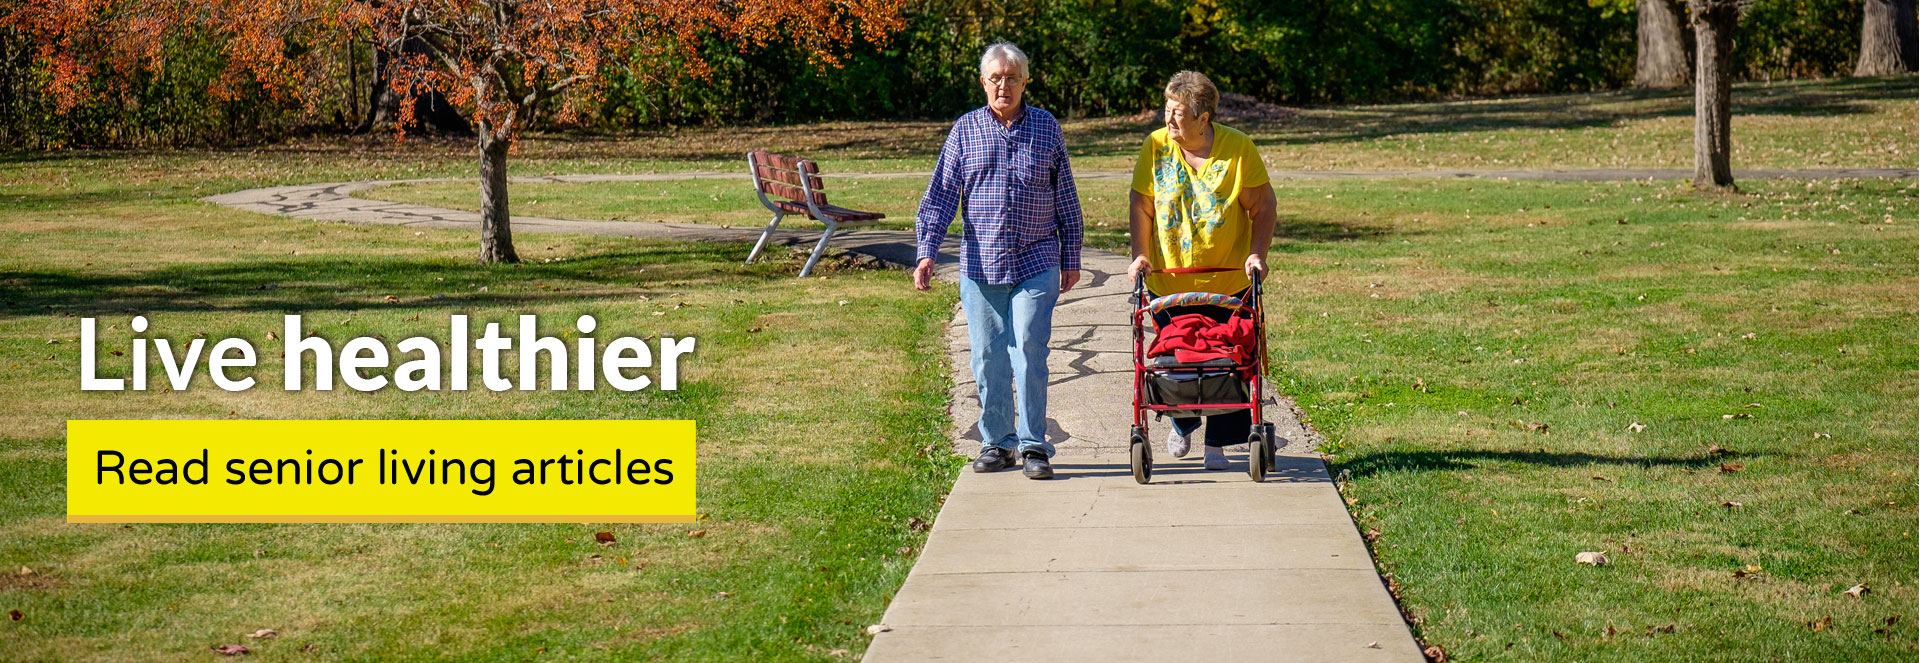 Live healthier: read senior living articles